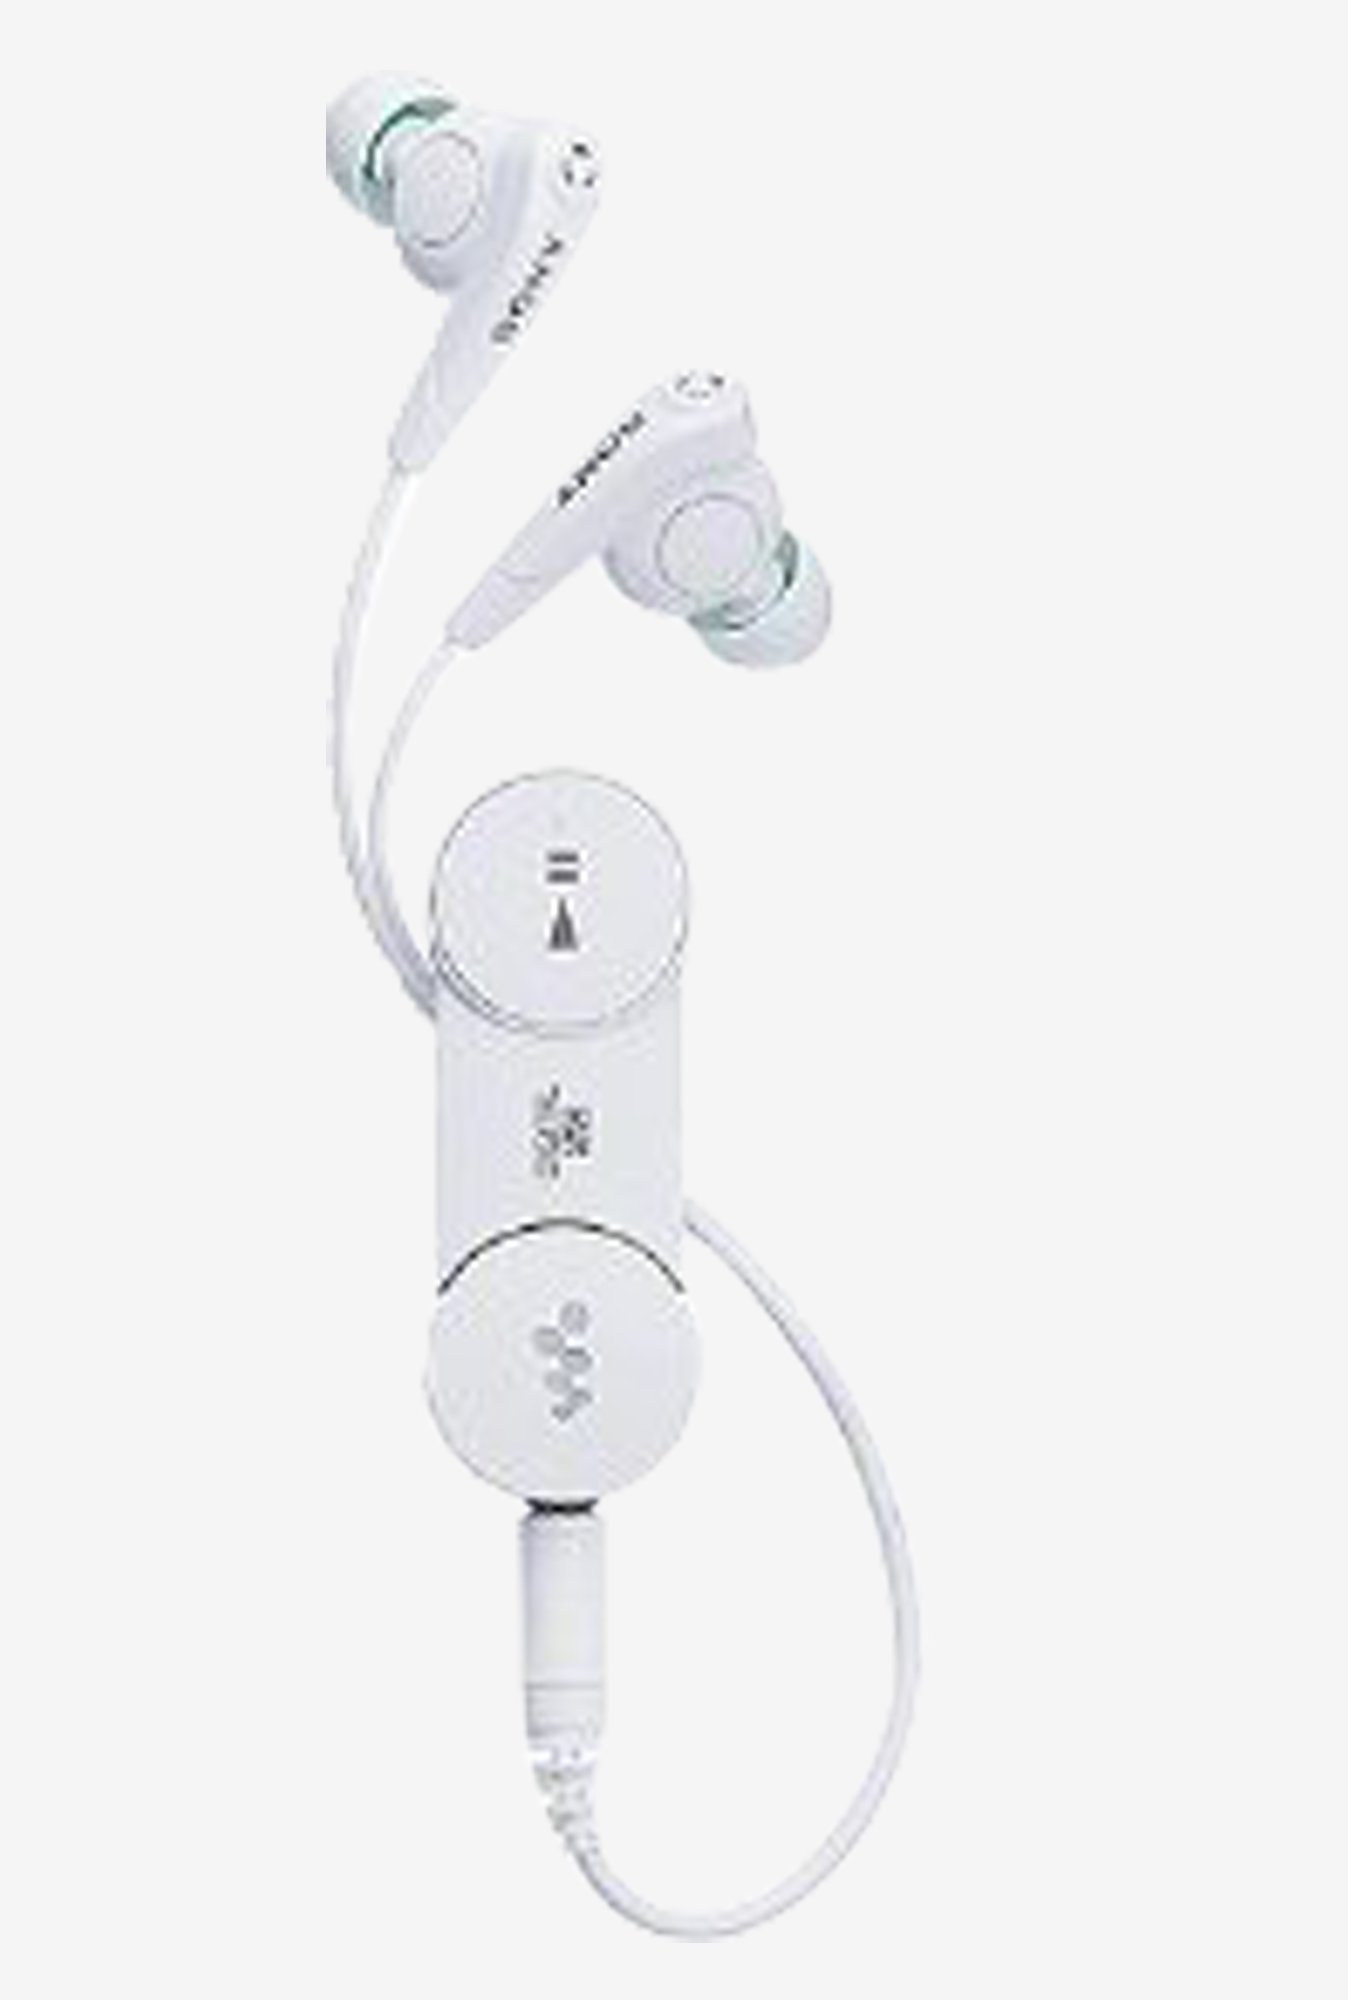 Sony Bluetooth Noise Canceling Stereo Headphones White